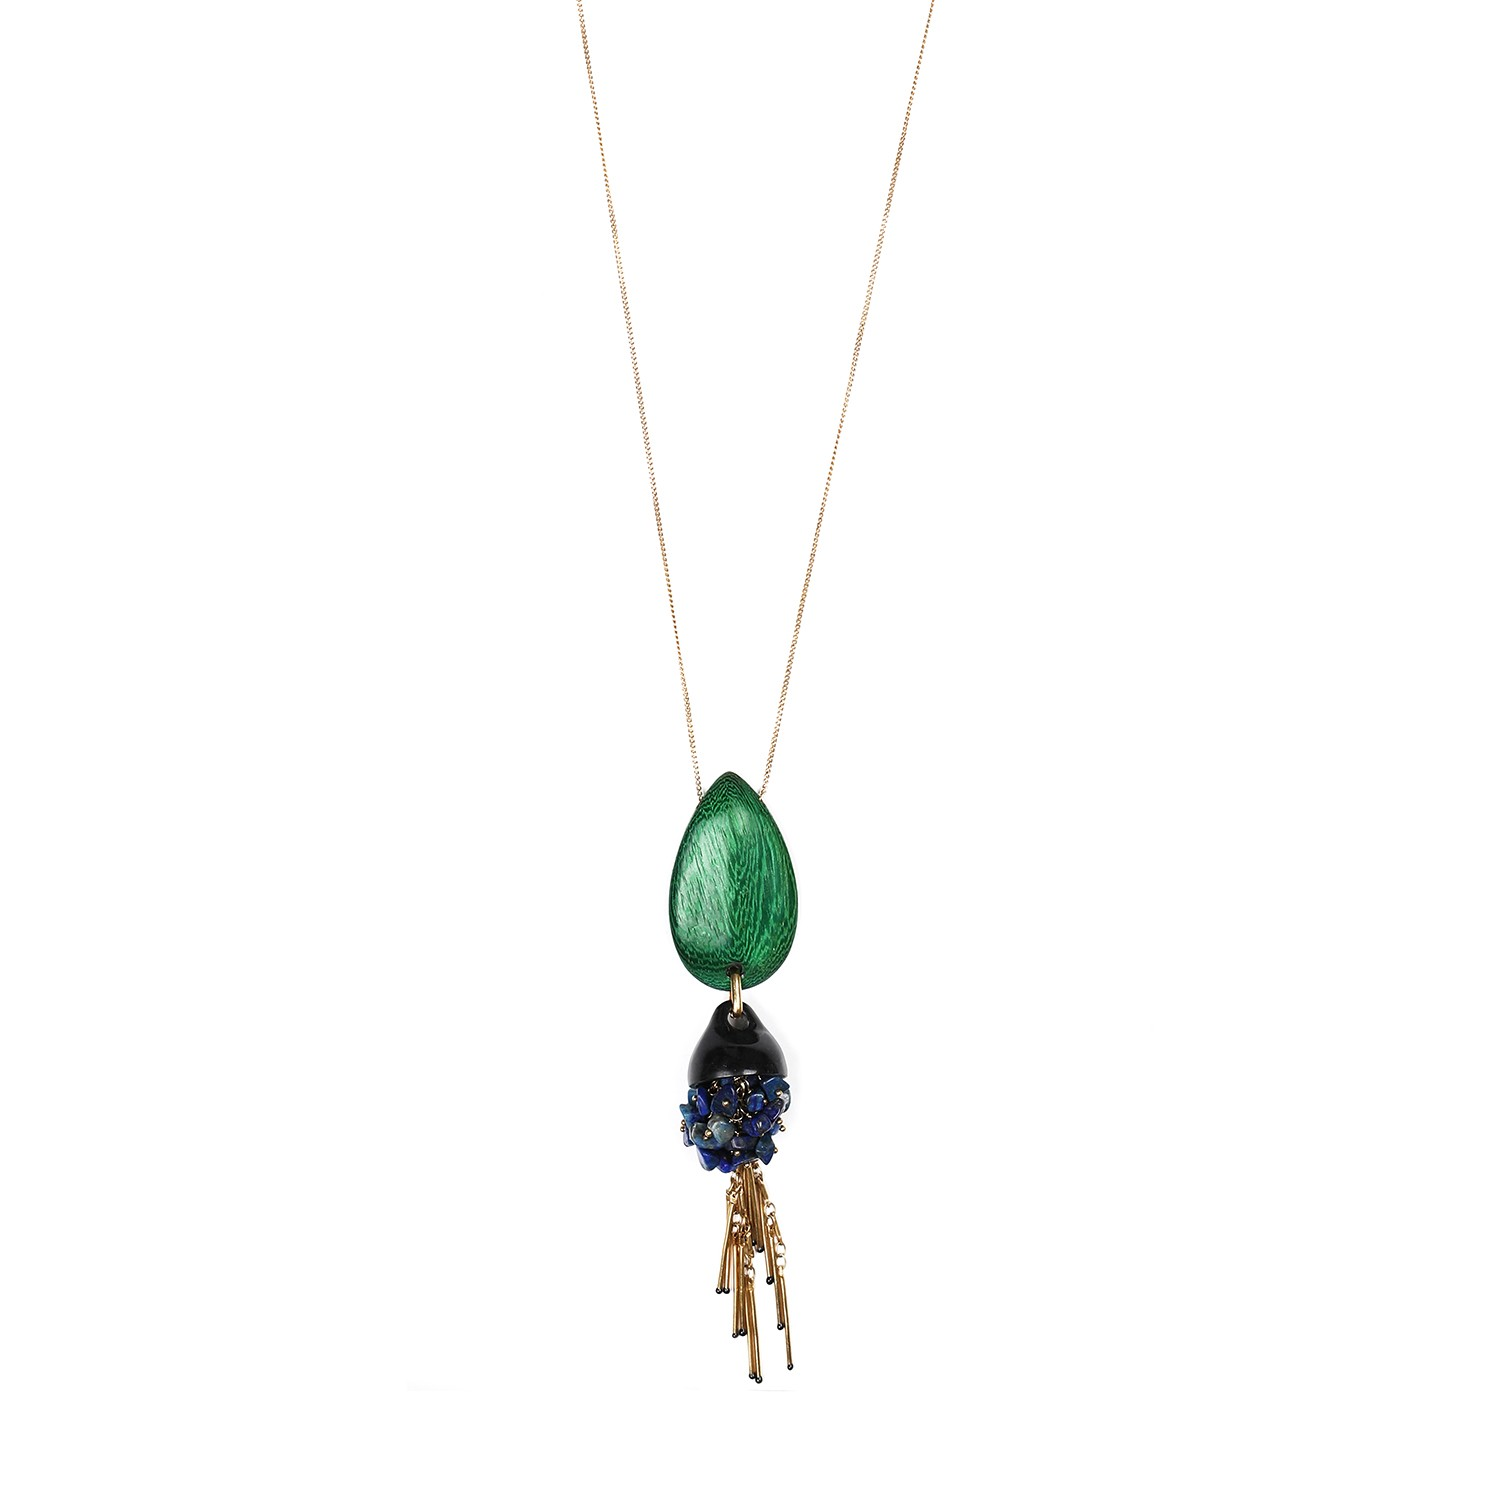 AGAPANTHE collier long